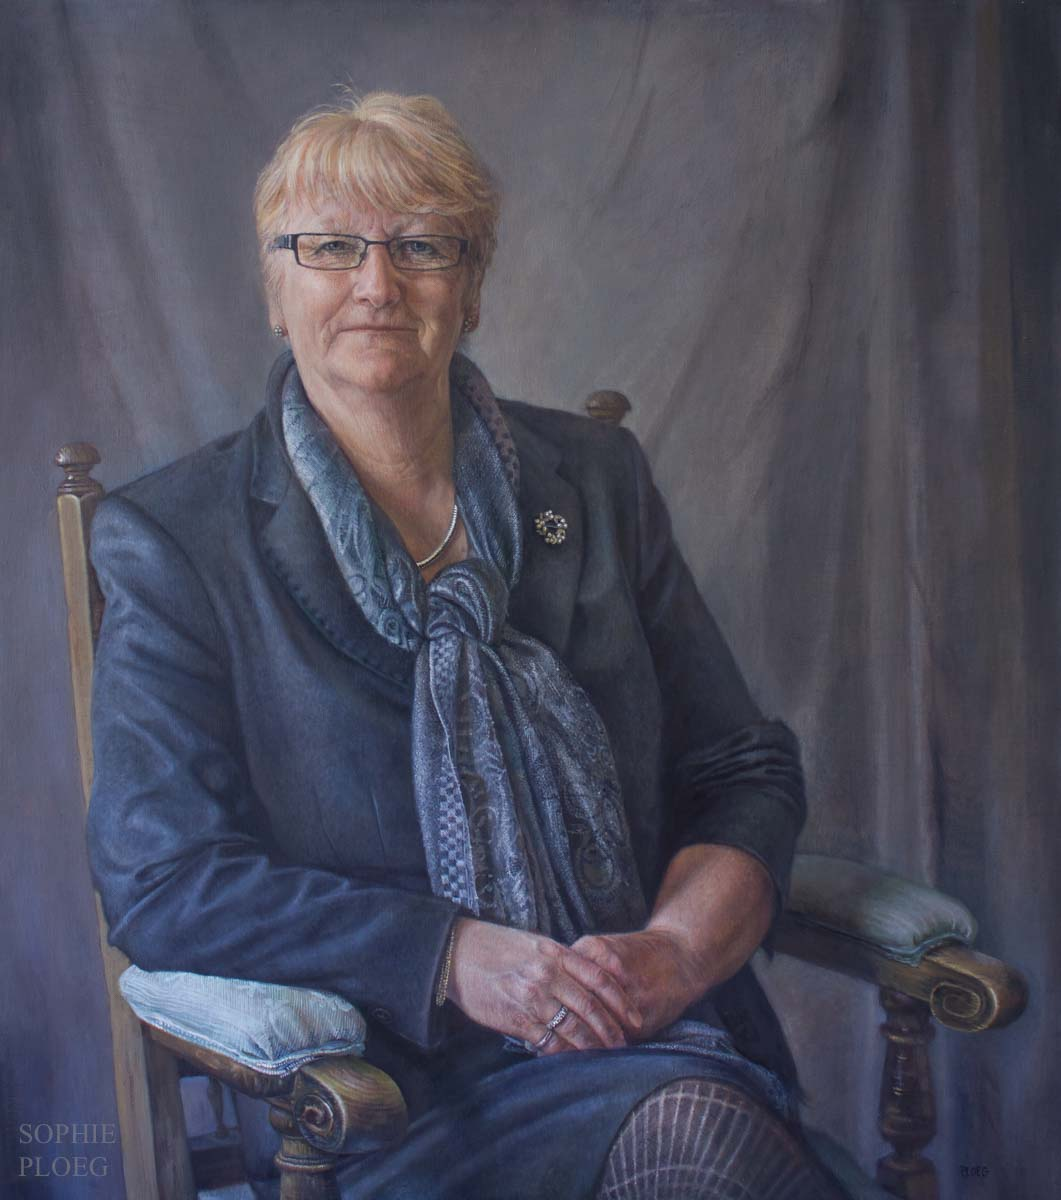 Sophie Ploeg, Mrs Margie Burnet Ward, oil on linen, 86x76cm. Commissioned.